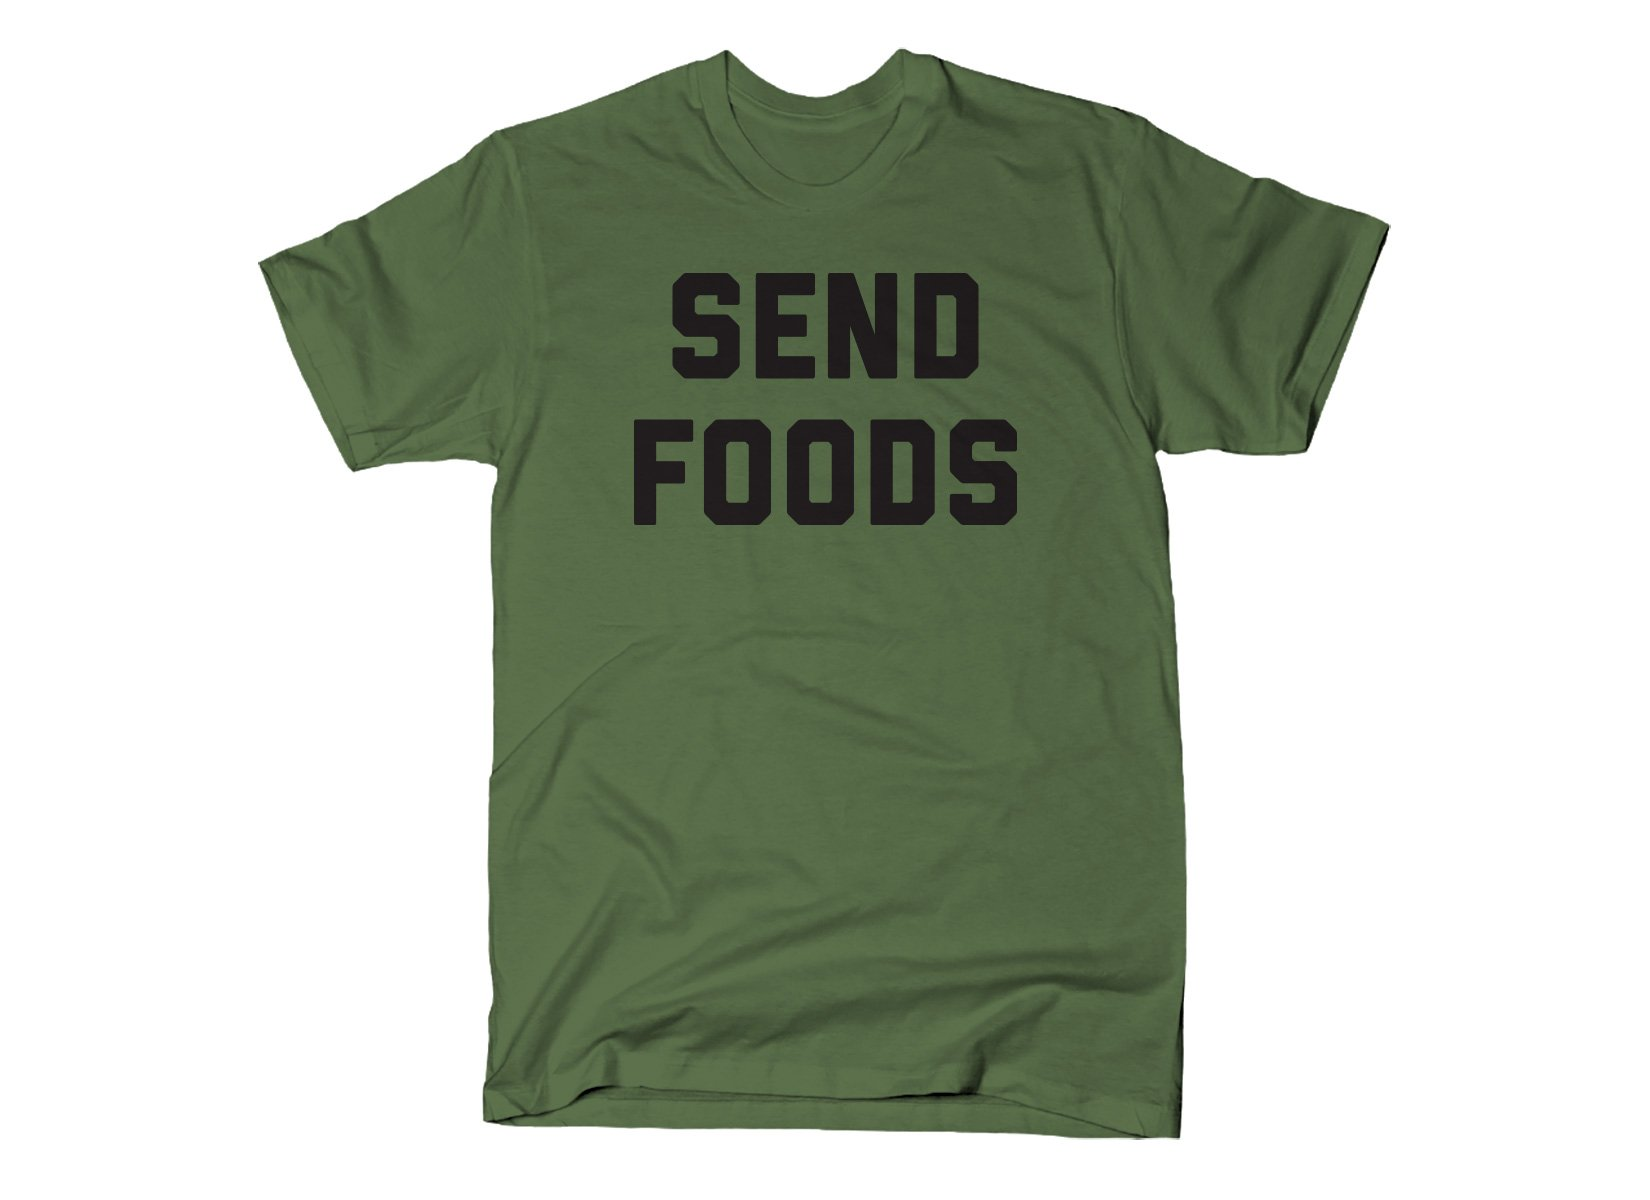 Send Foods on Mens T-Shirt